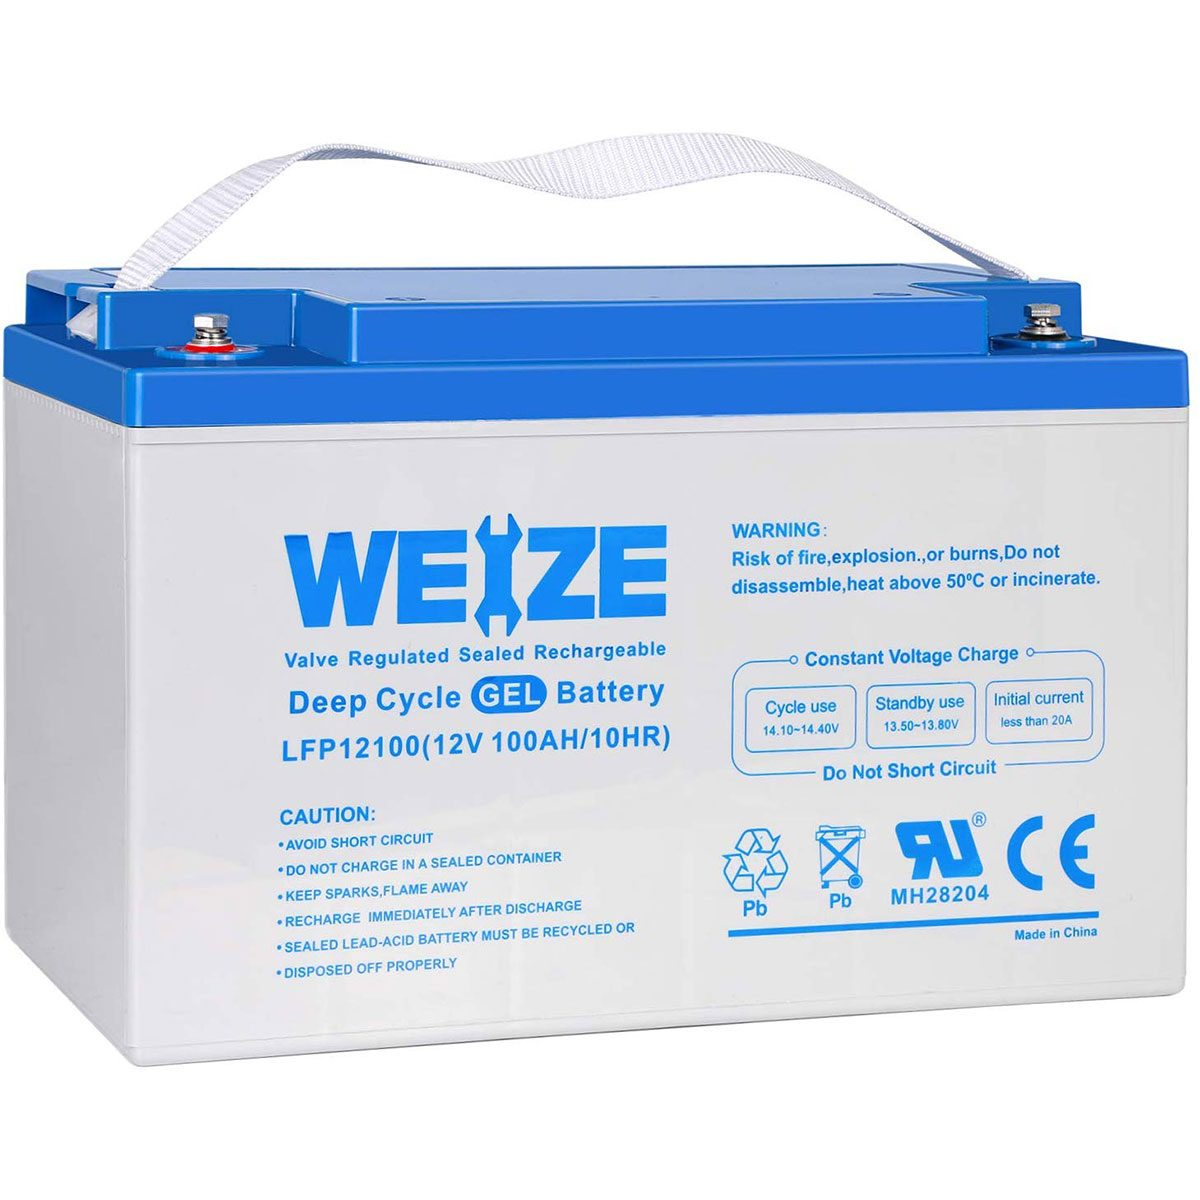 Weize gell cell battery